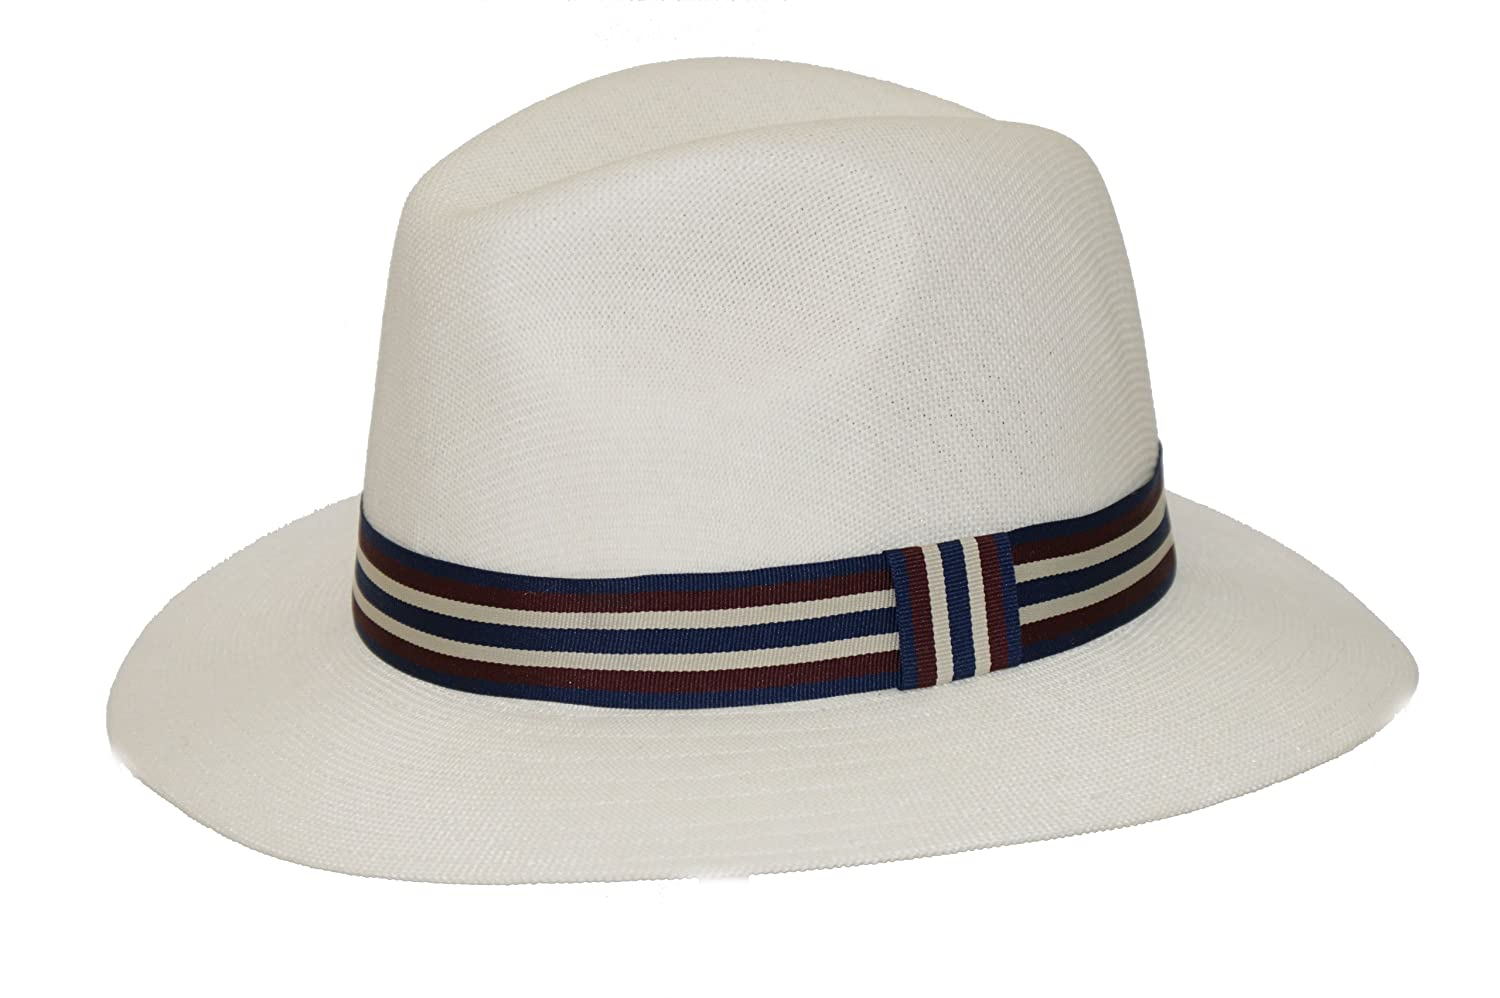 96e75c6a7ee00 Men s Summer Striped Panama Polyester Style Trilby Hat